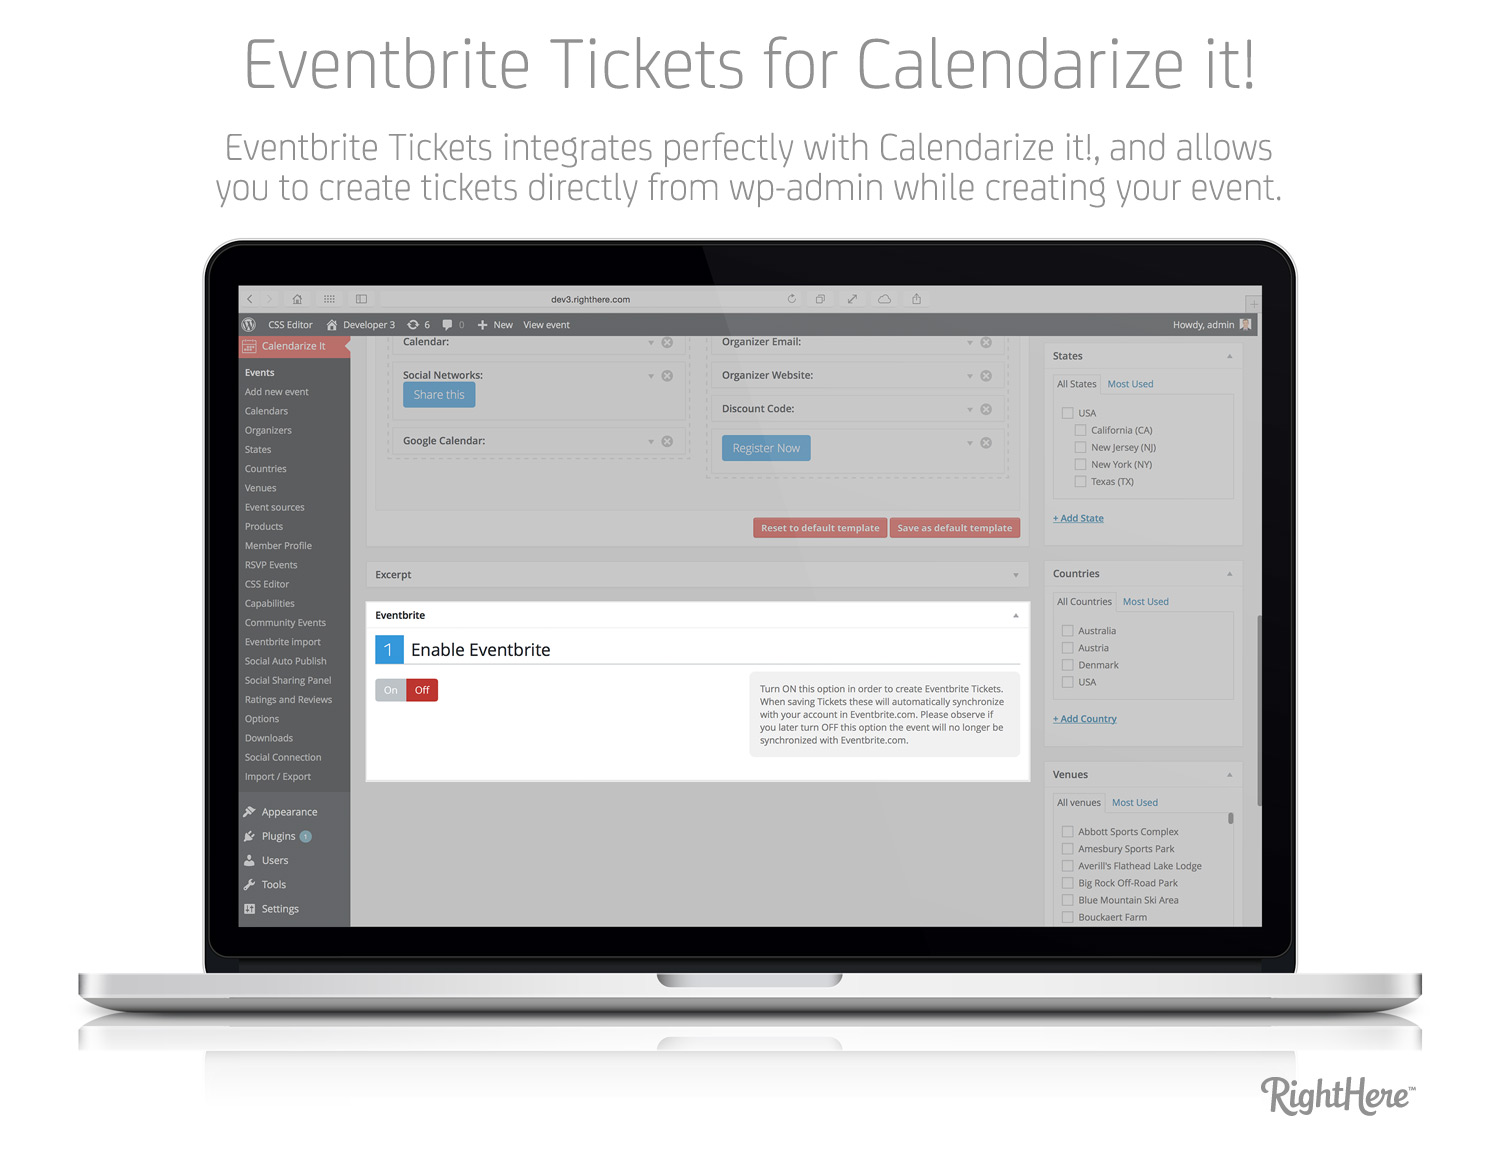 Eventbrite Tickets for Calendarize it! - Create Tickets